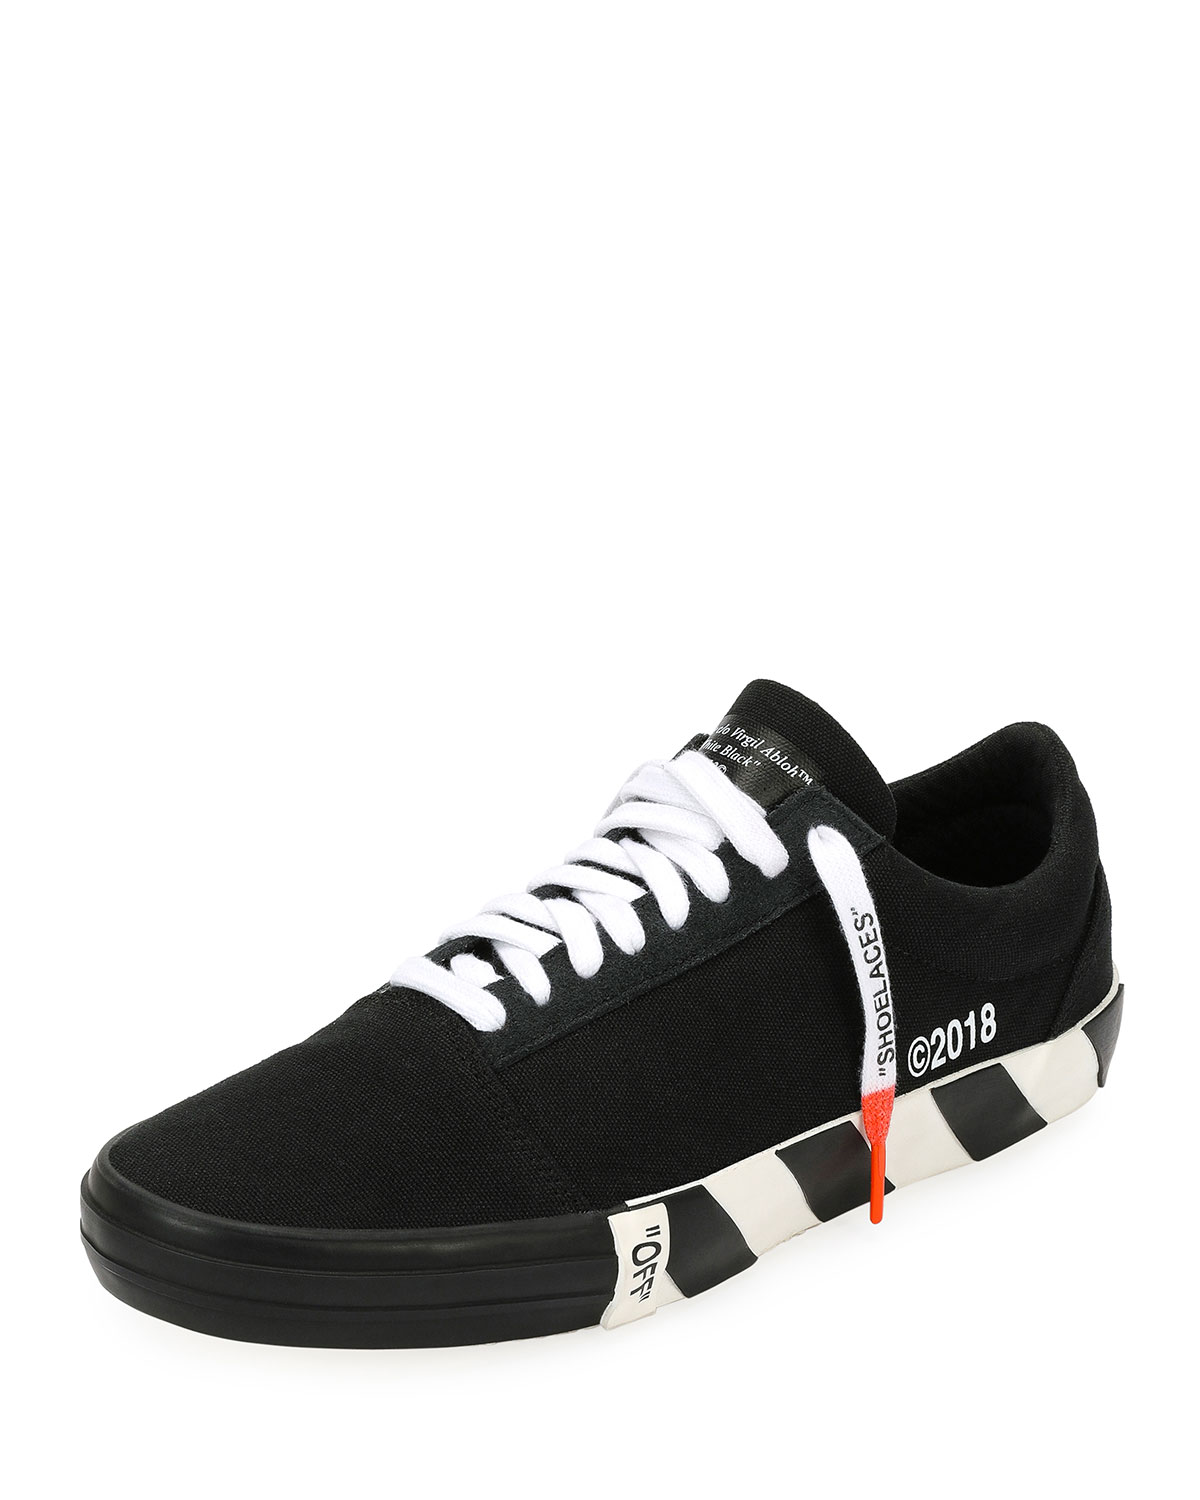 Off-White Men s Vulc Striped-Sole Canvas Low-Top Sneaker  06a5ef493a88